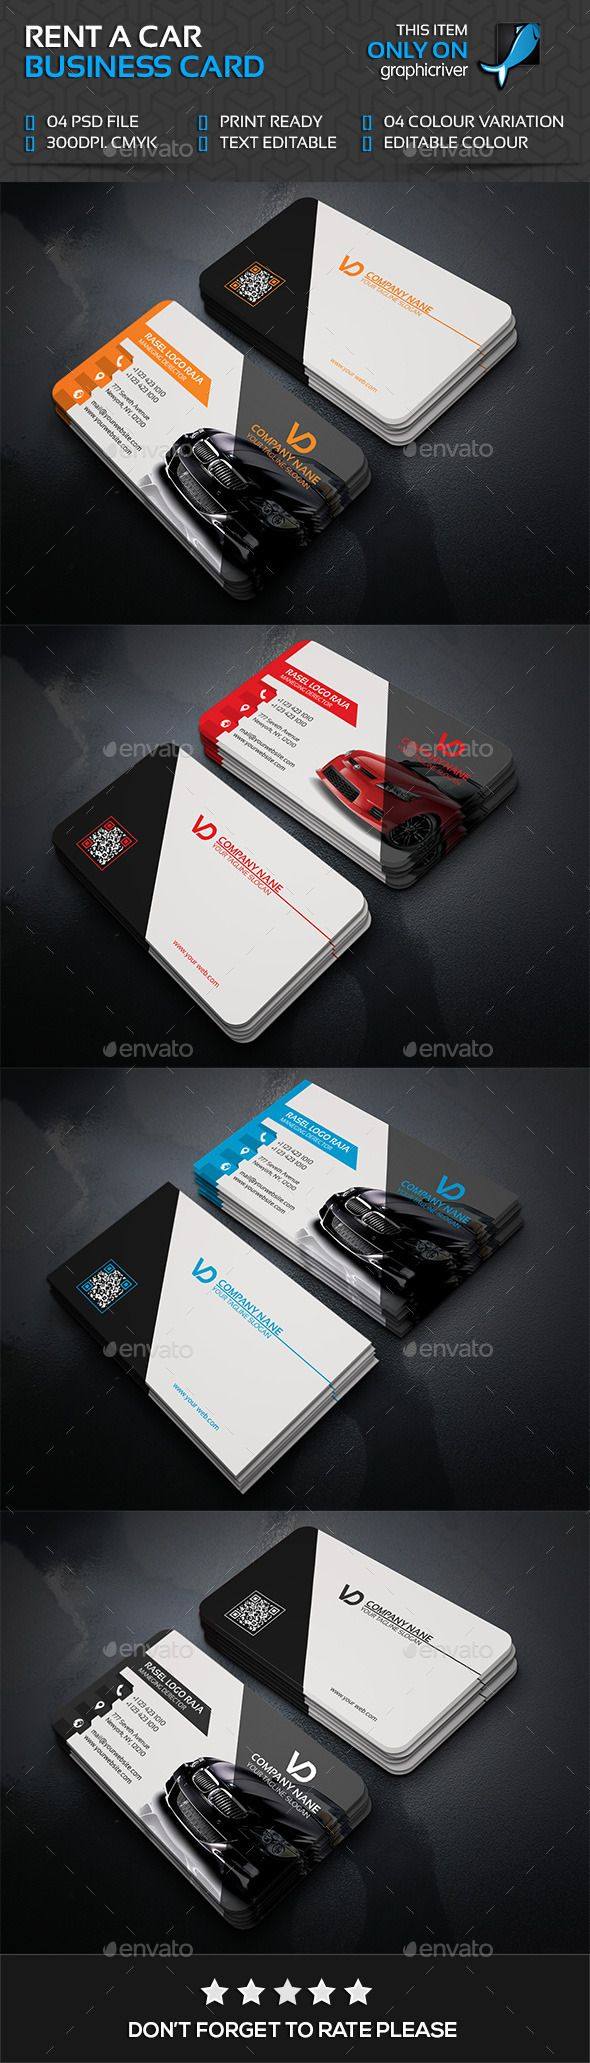 Rant a car business card template psd visitcard design download rant a car business card by kawsarnshimo graphicriver reheart Gallery